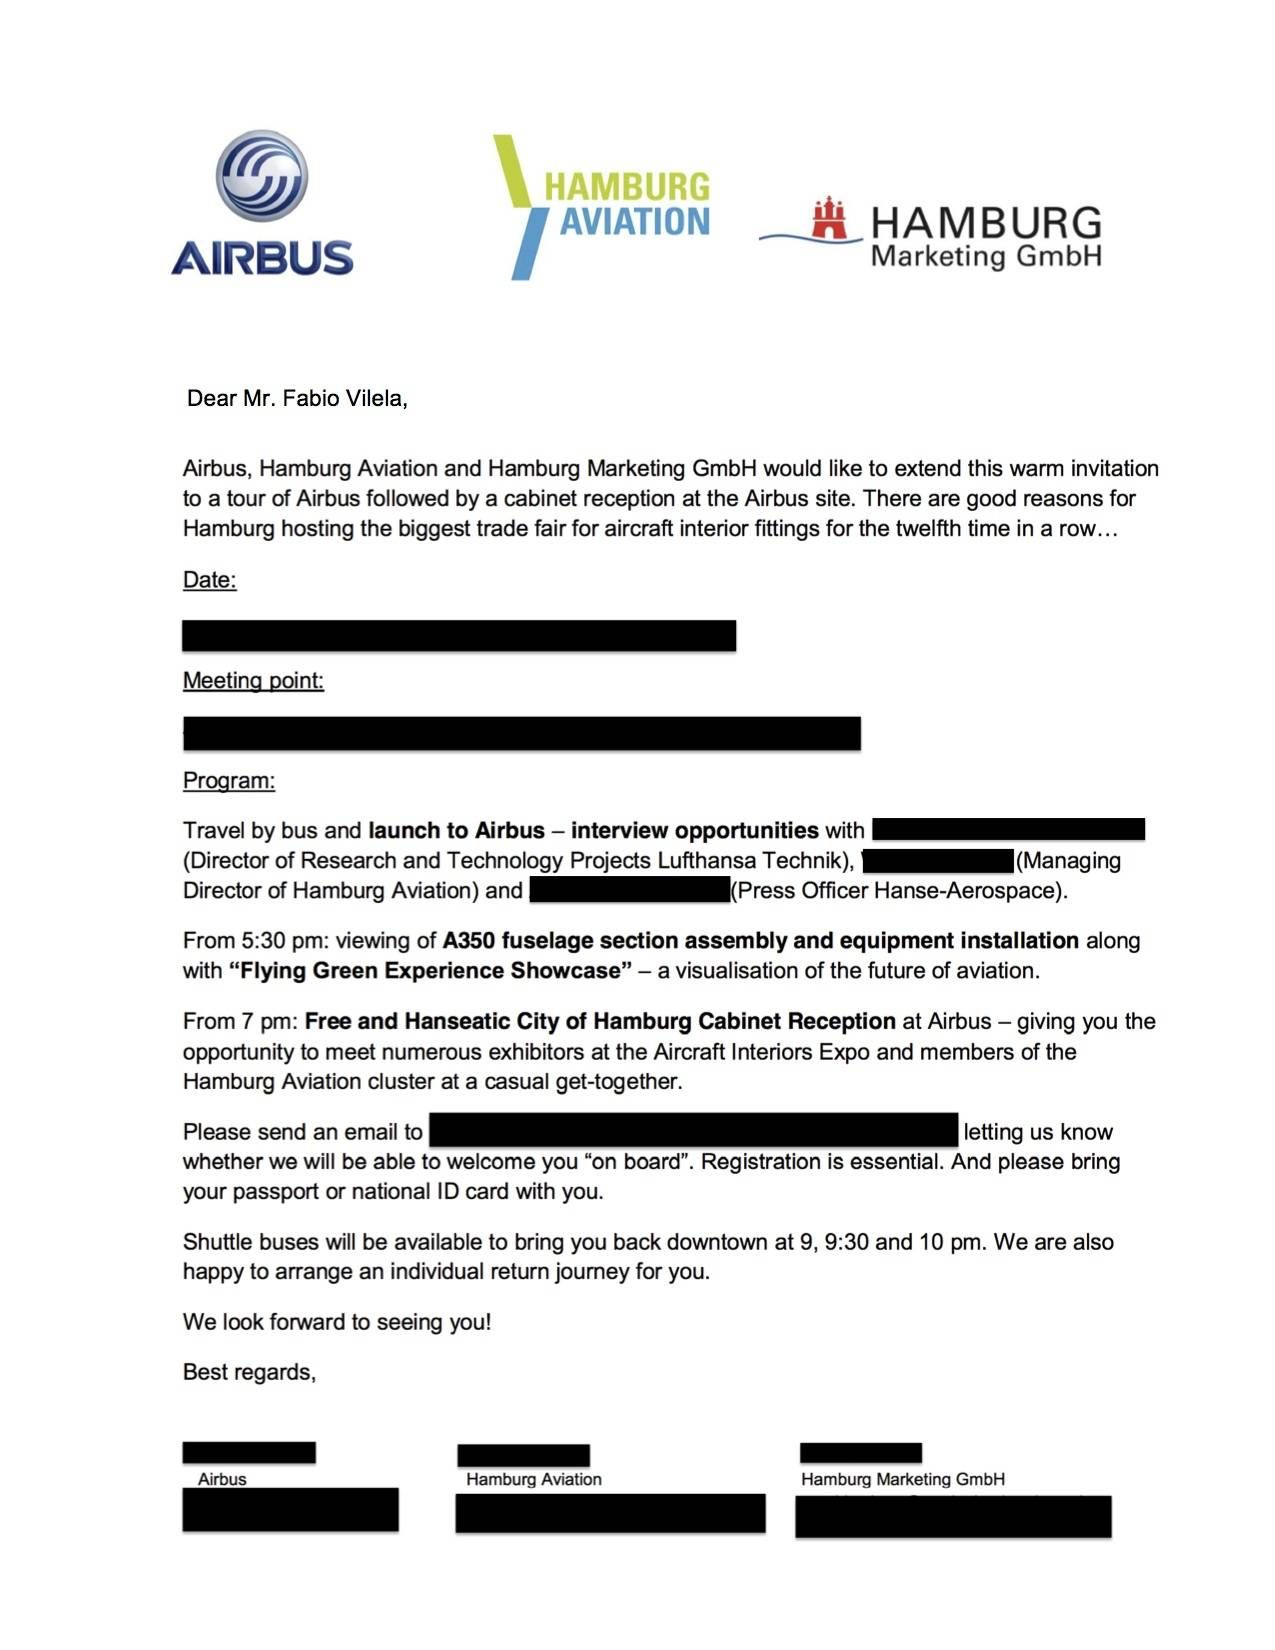 AIRBUS INVITATION